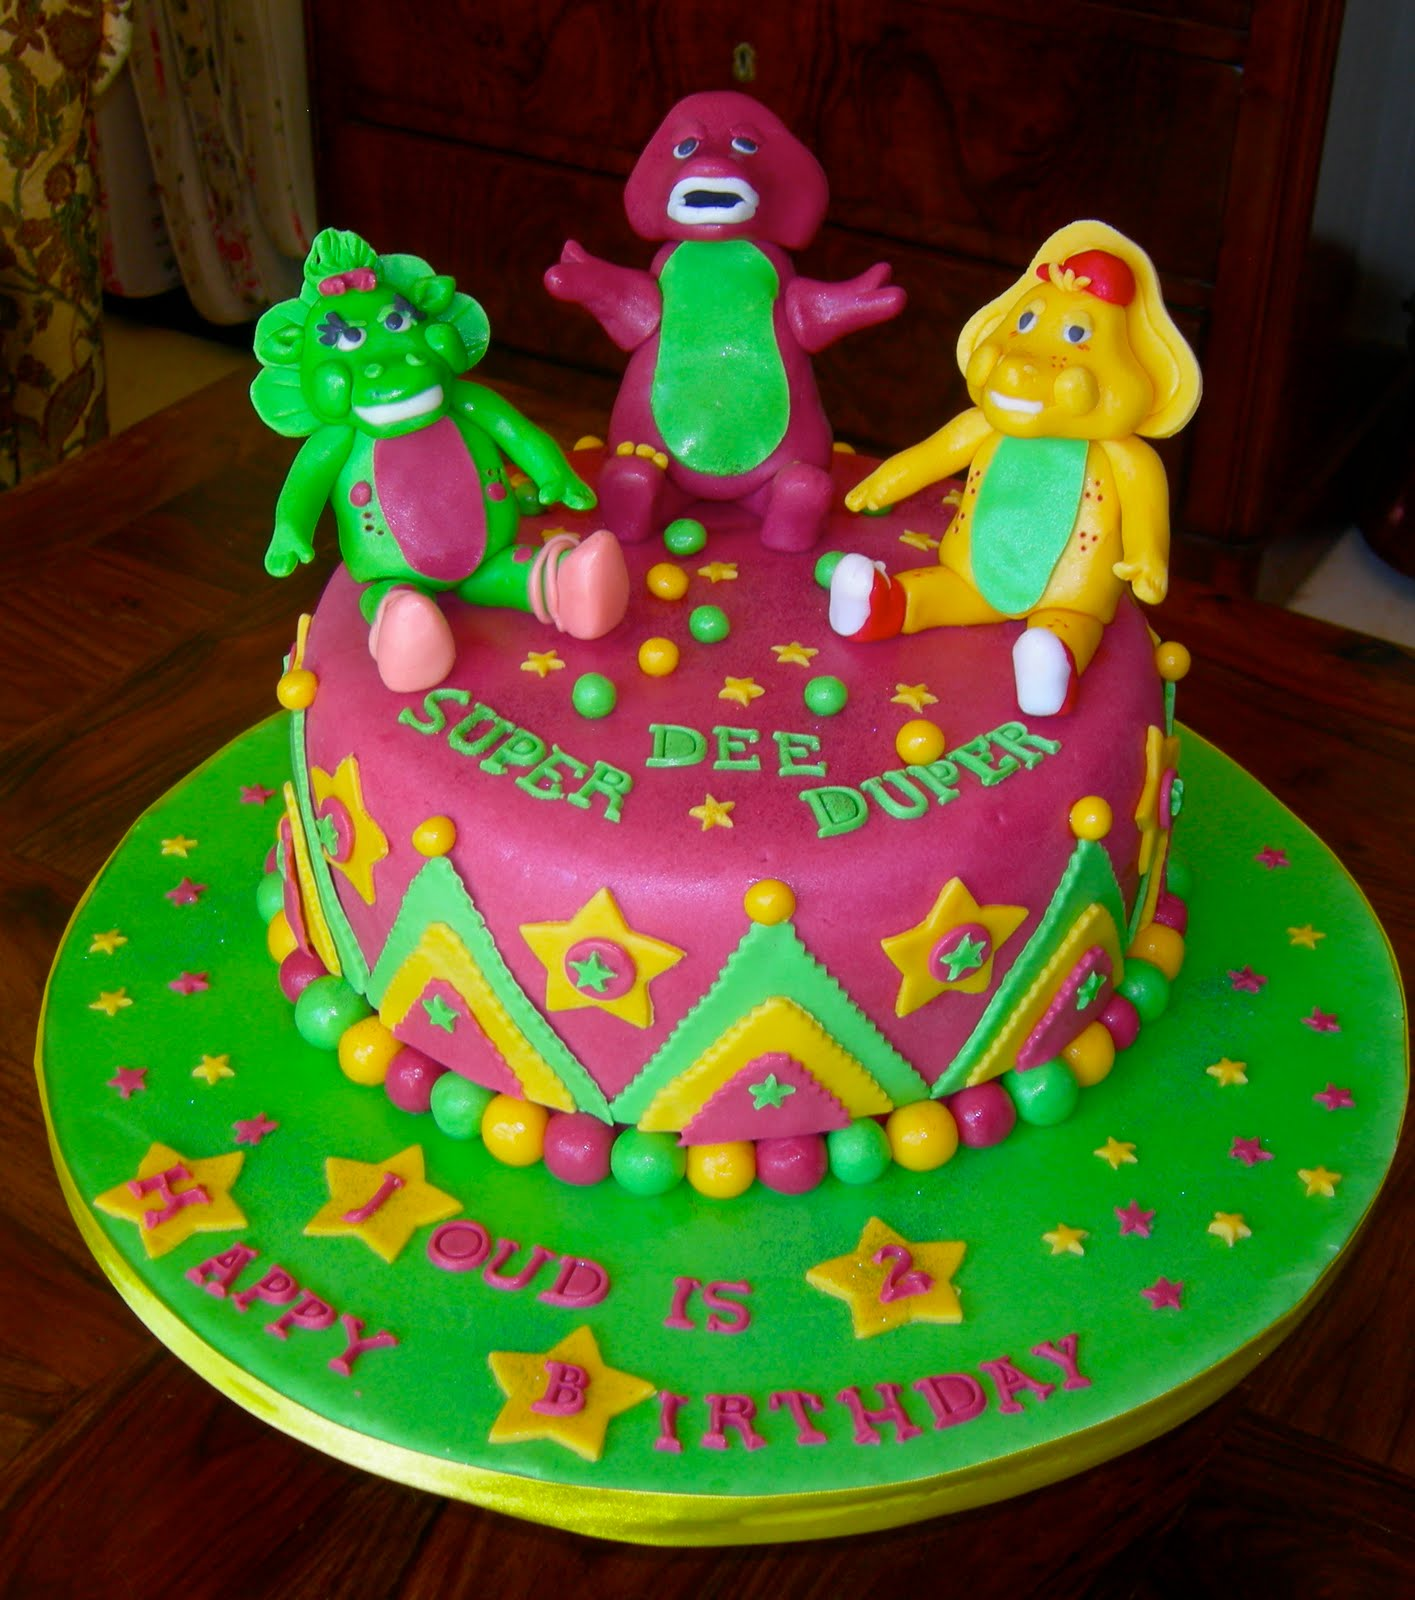 ANOTHER BARNEY AND FRIENDS CAKE